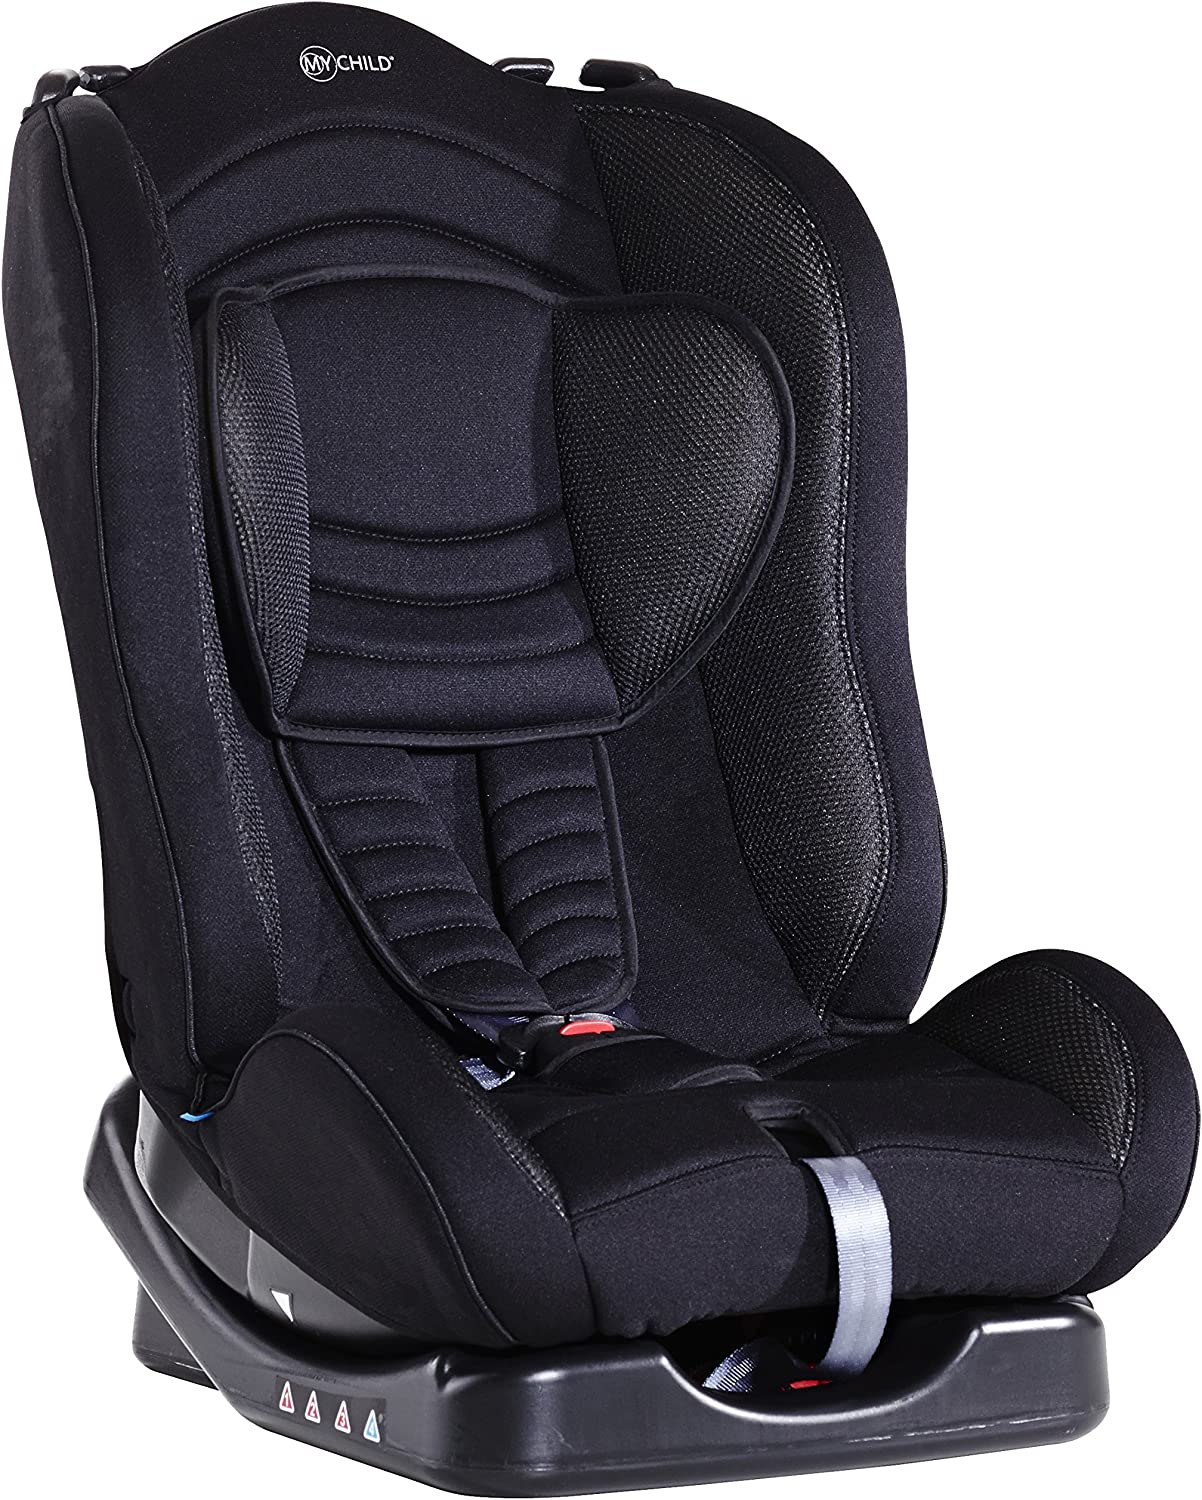 MyChild Hamilton Group 0+//1 5-Point Childs Car Seat Black From Birth To 18kg